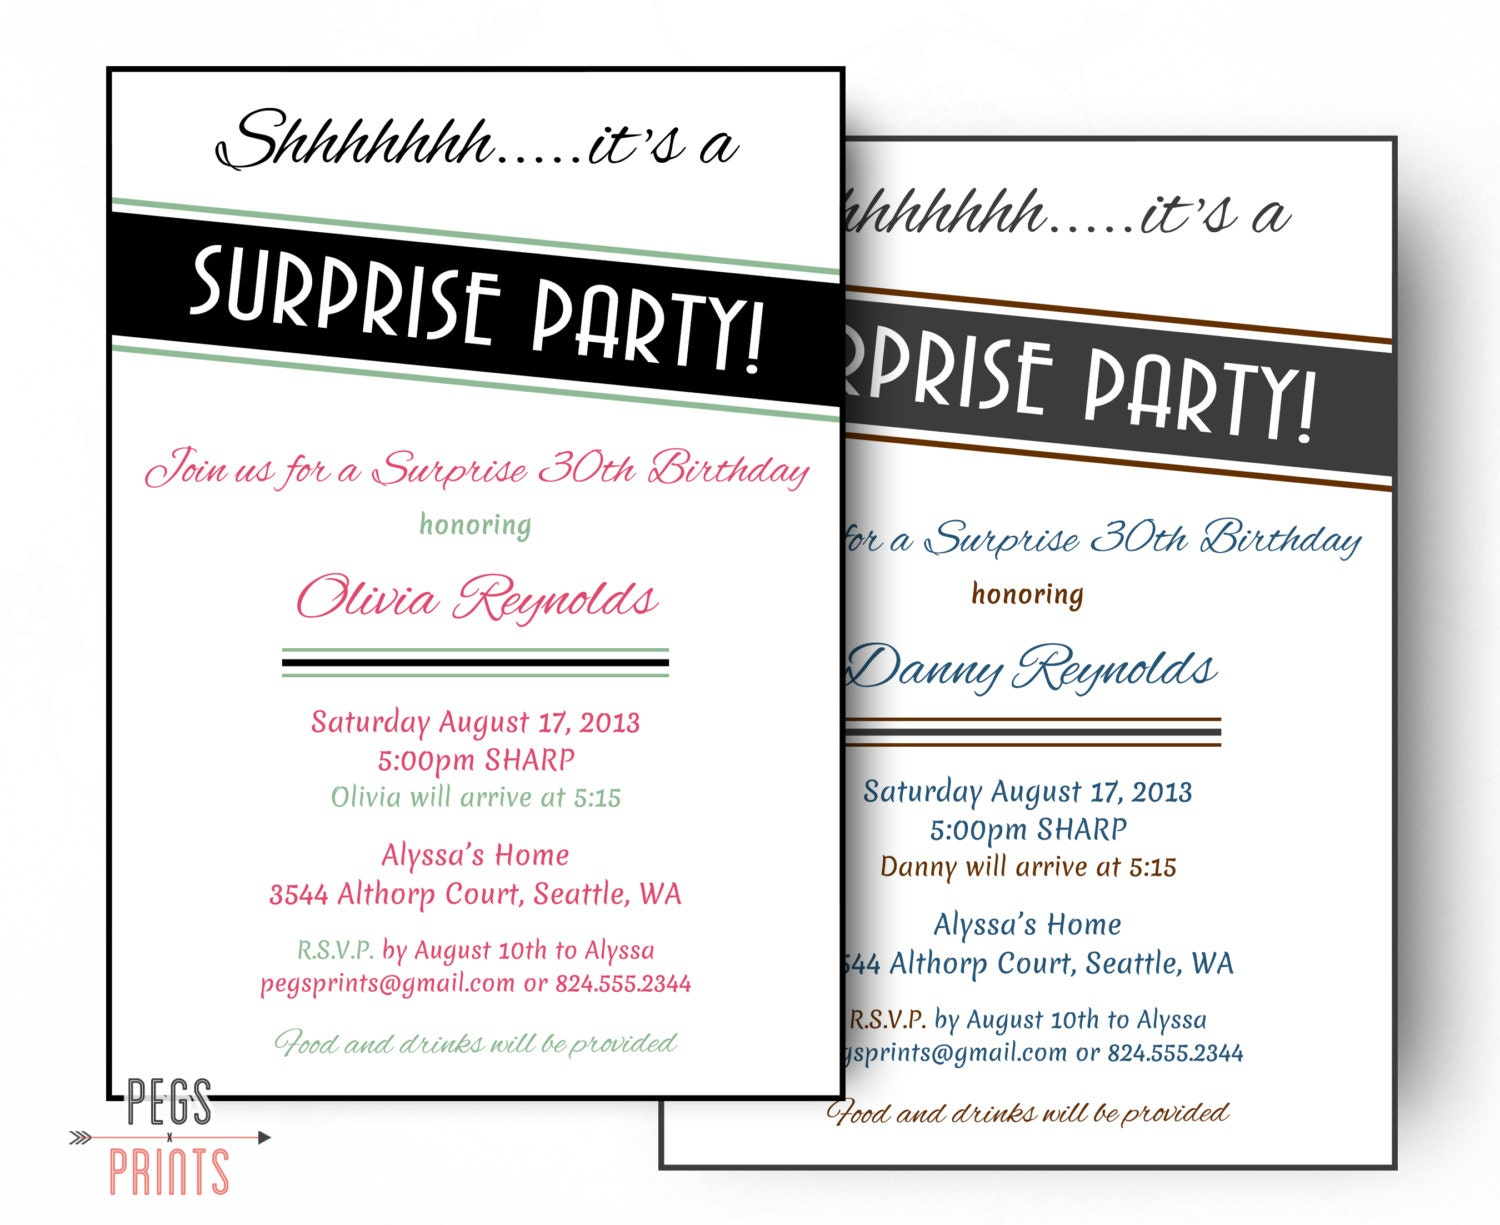 Adultes de surprise anniversaire invitation imprimer - Invitation anniversaire surprise ...